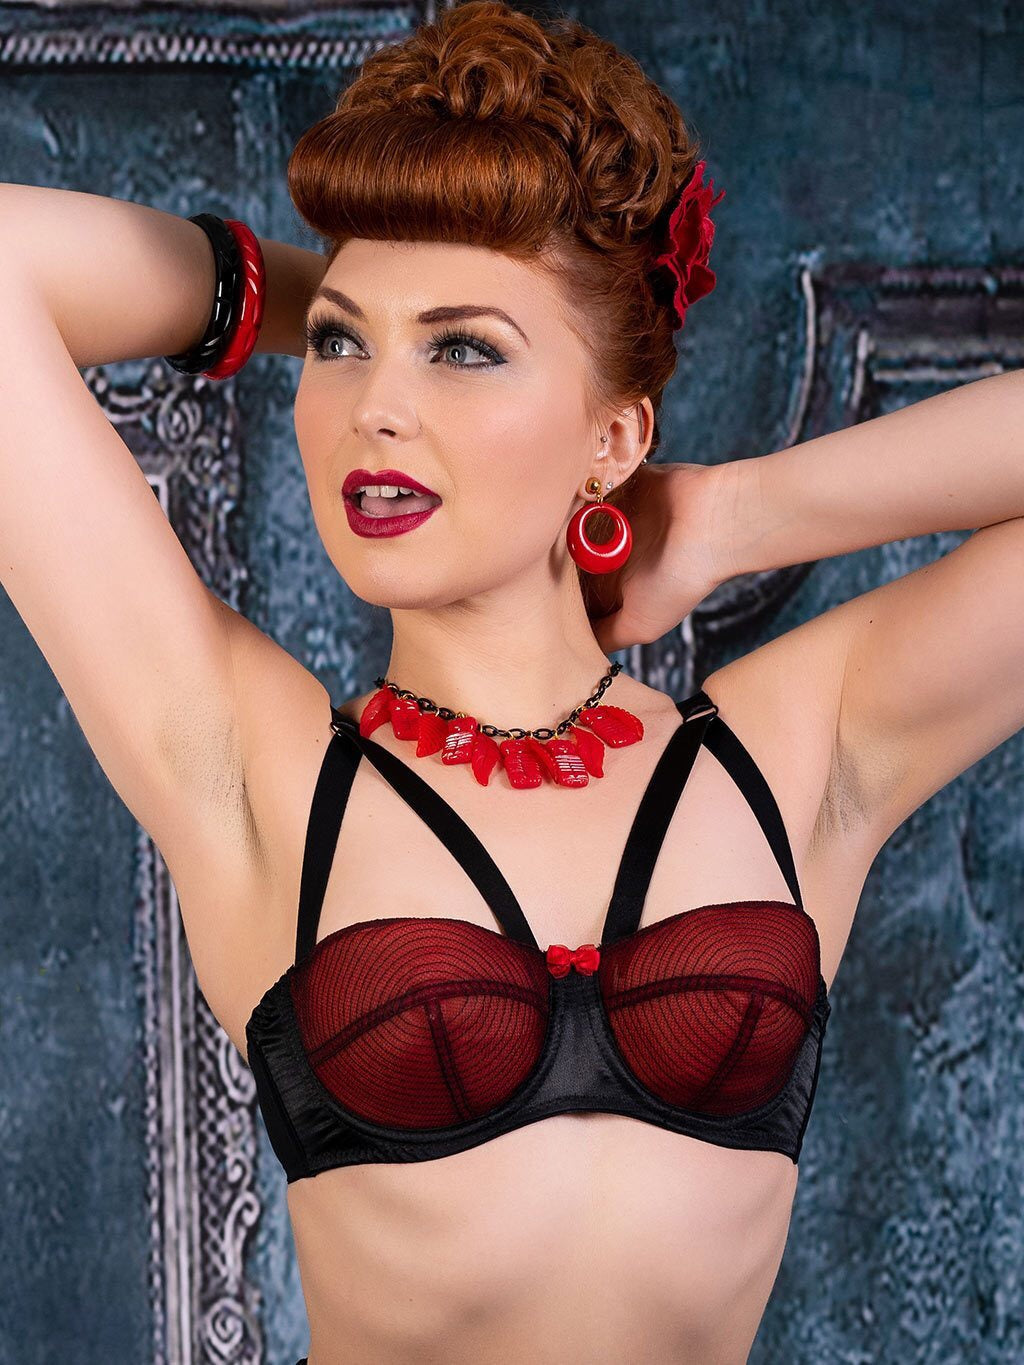 Yva Sling Bra - select sizes 32D-36F and 38C-DD